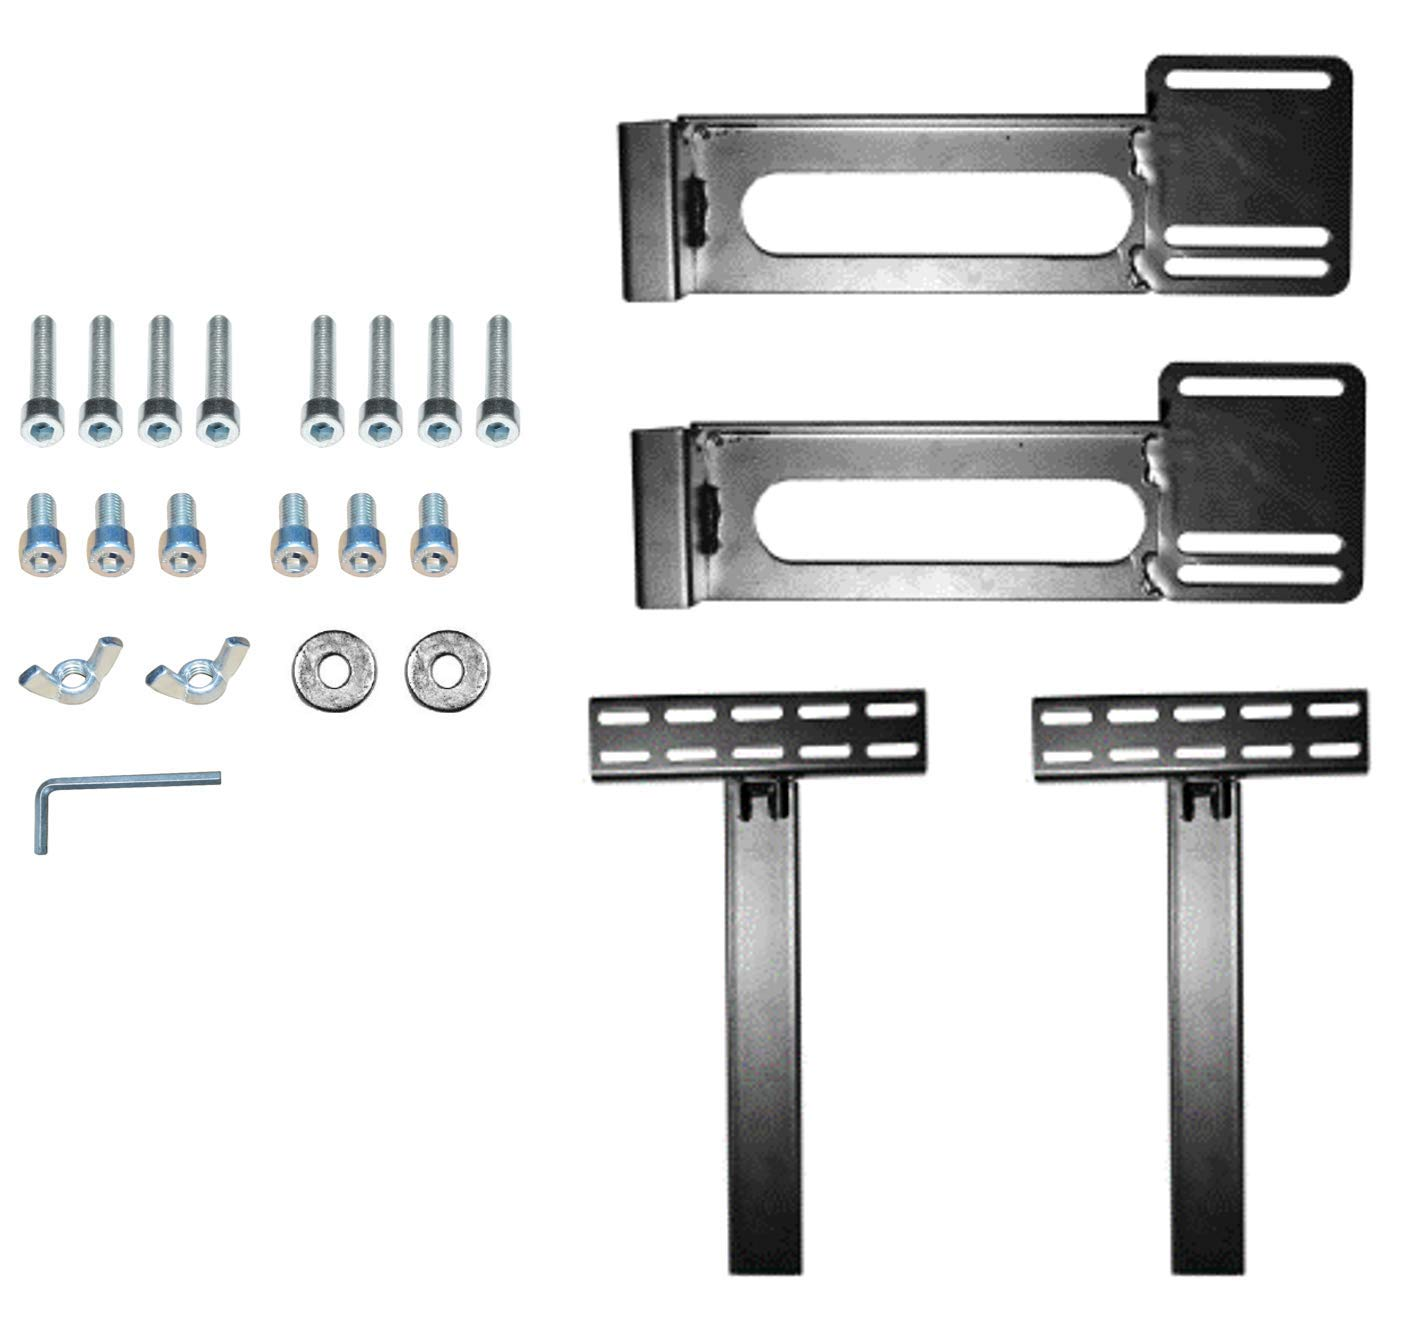 Ease Ease 2.0 Headboard Bracket Kit